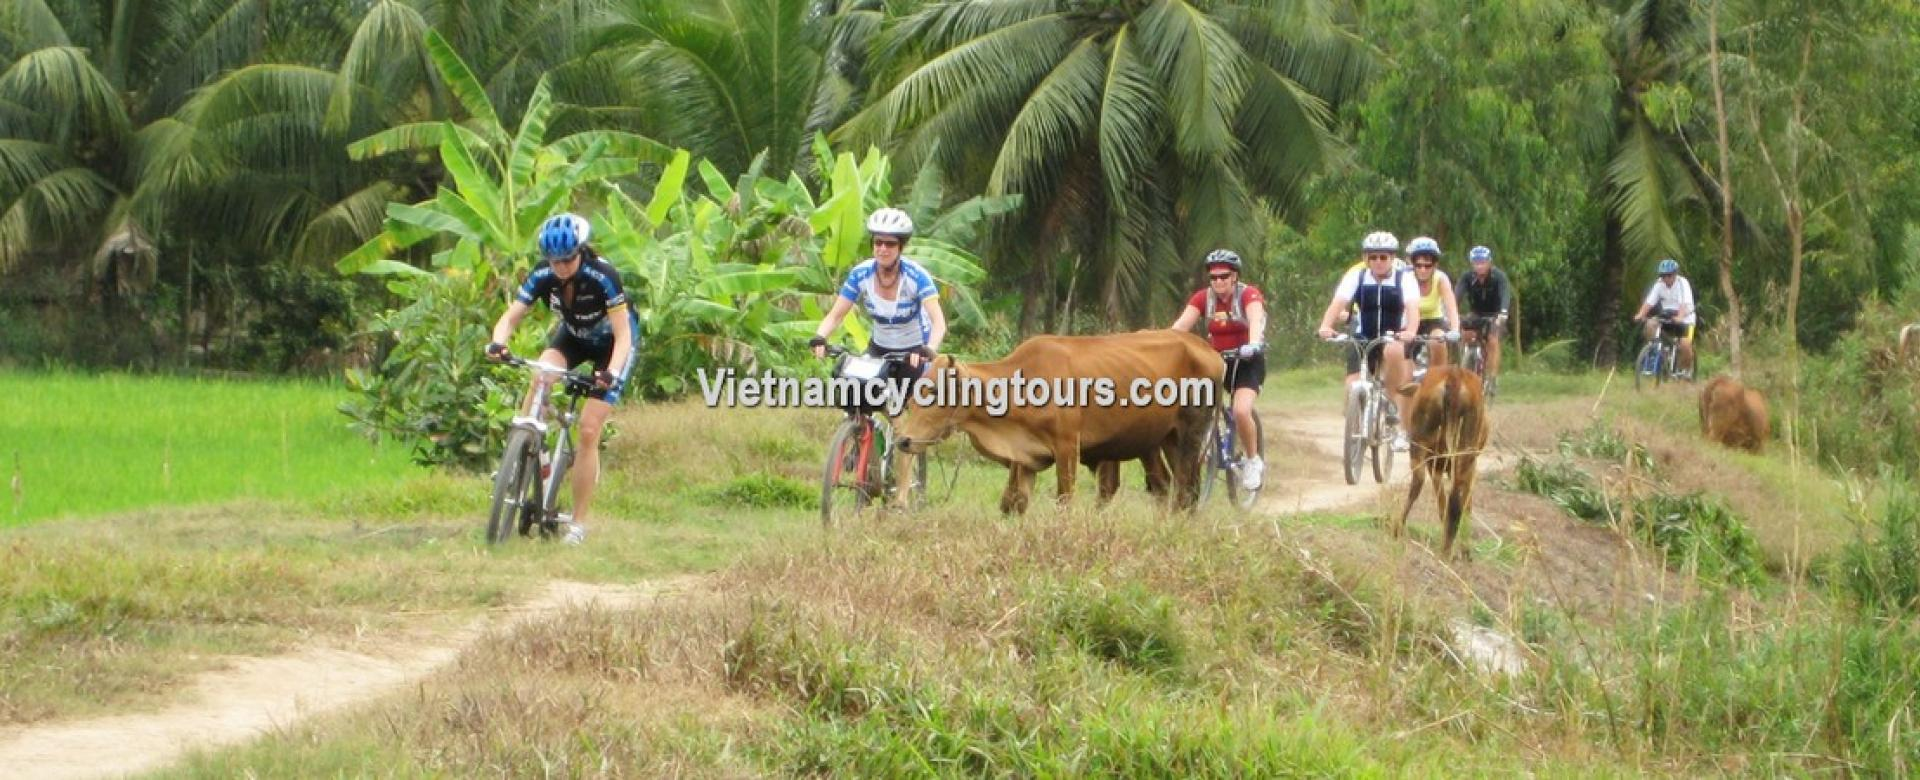 Cycle tour - Tra Vinh - Can Tho - Long Xuyen - Chau Doc